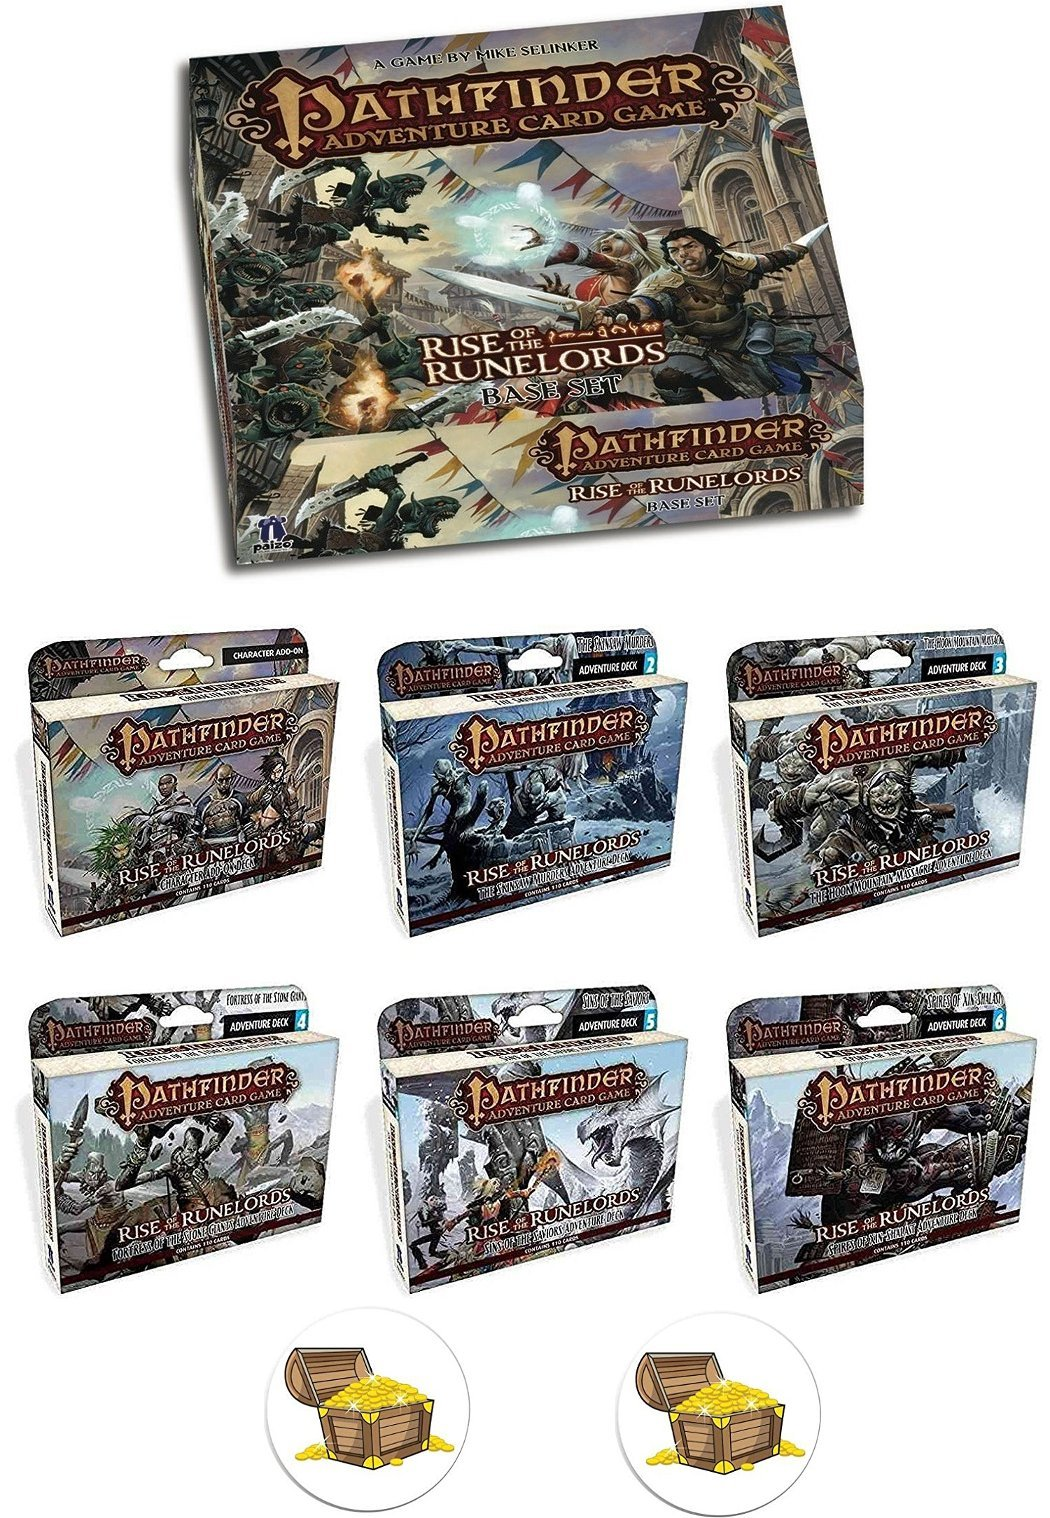 BUNDLE of Pathfinder Adventure Card Game Base Game Plus All 6 Rise of the Runelords Expansion Decks and 2 Treasure Chest Buttons